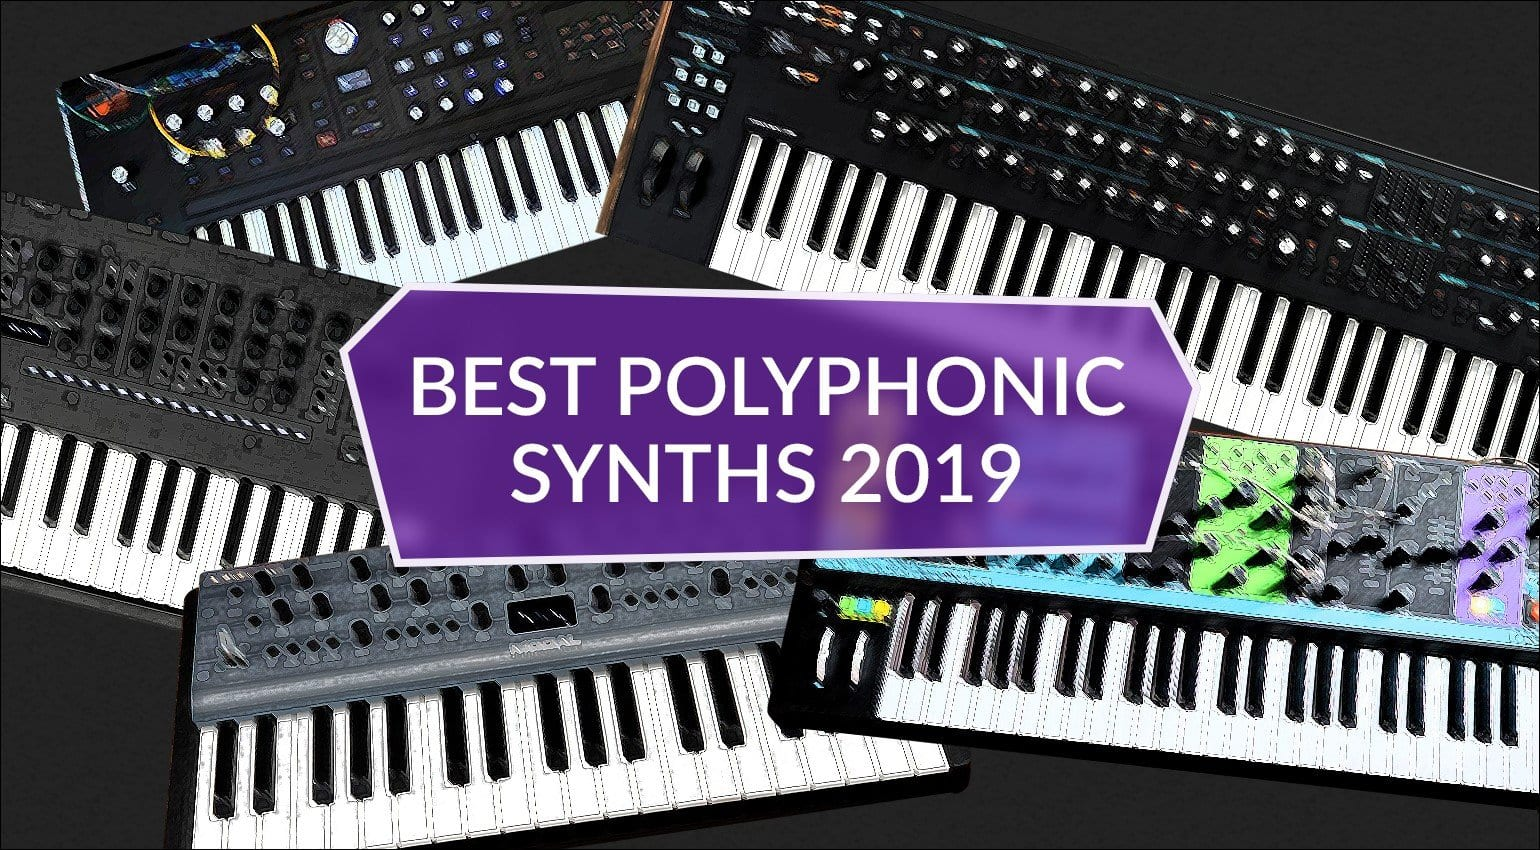 Best polyphonic synthesizers of 2019: The Top 6 new